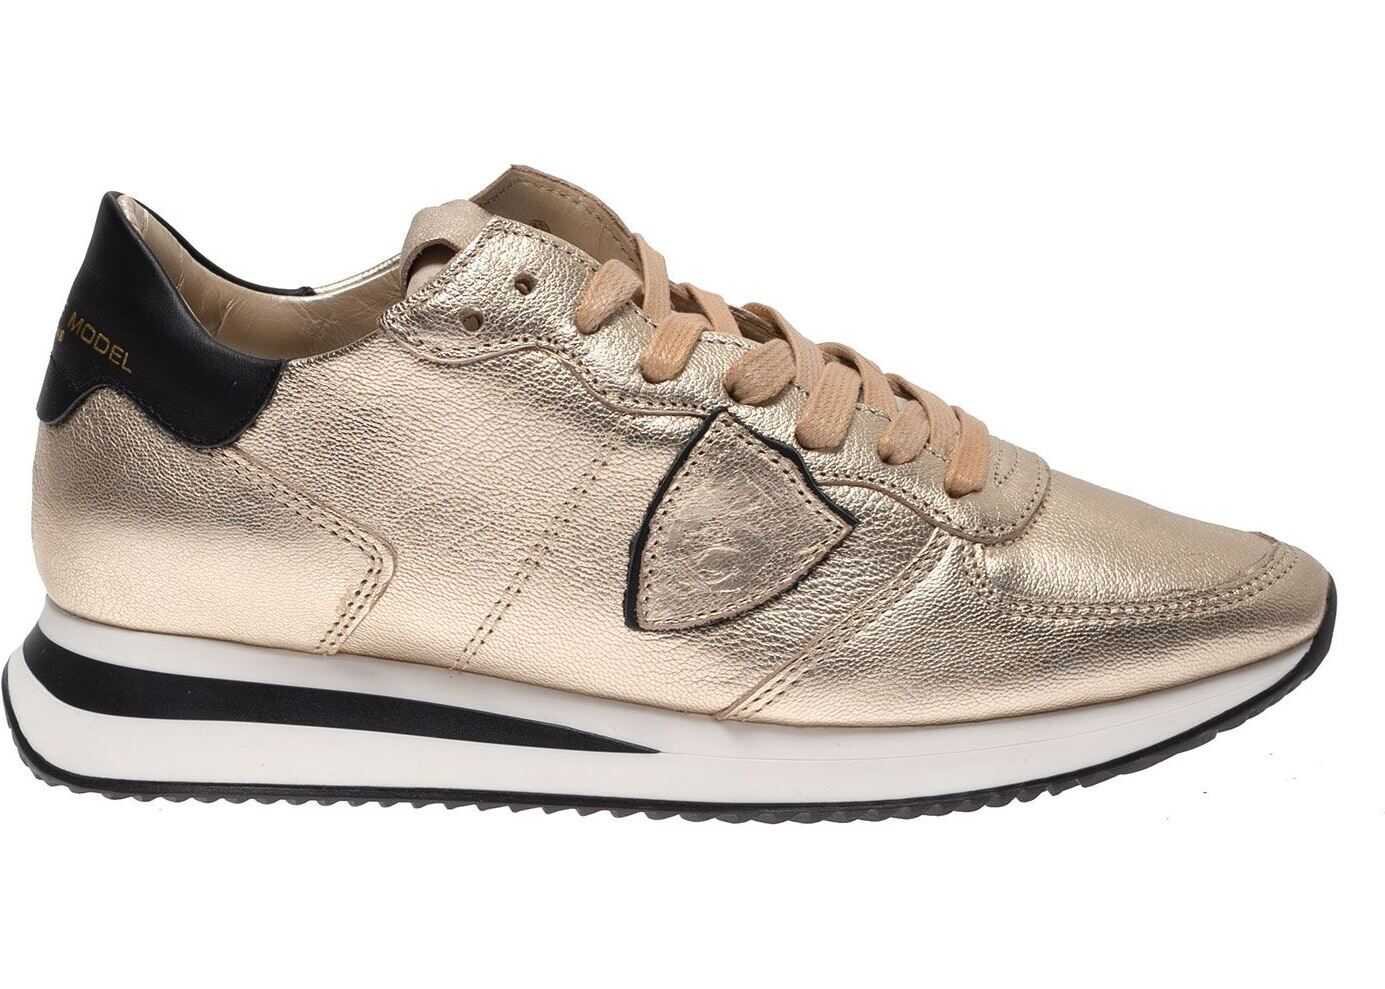 Philippe Model Trpx Sneakers In Gold Gold